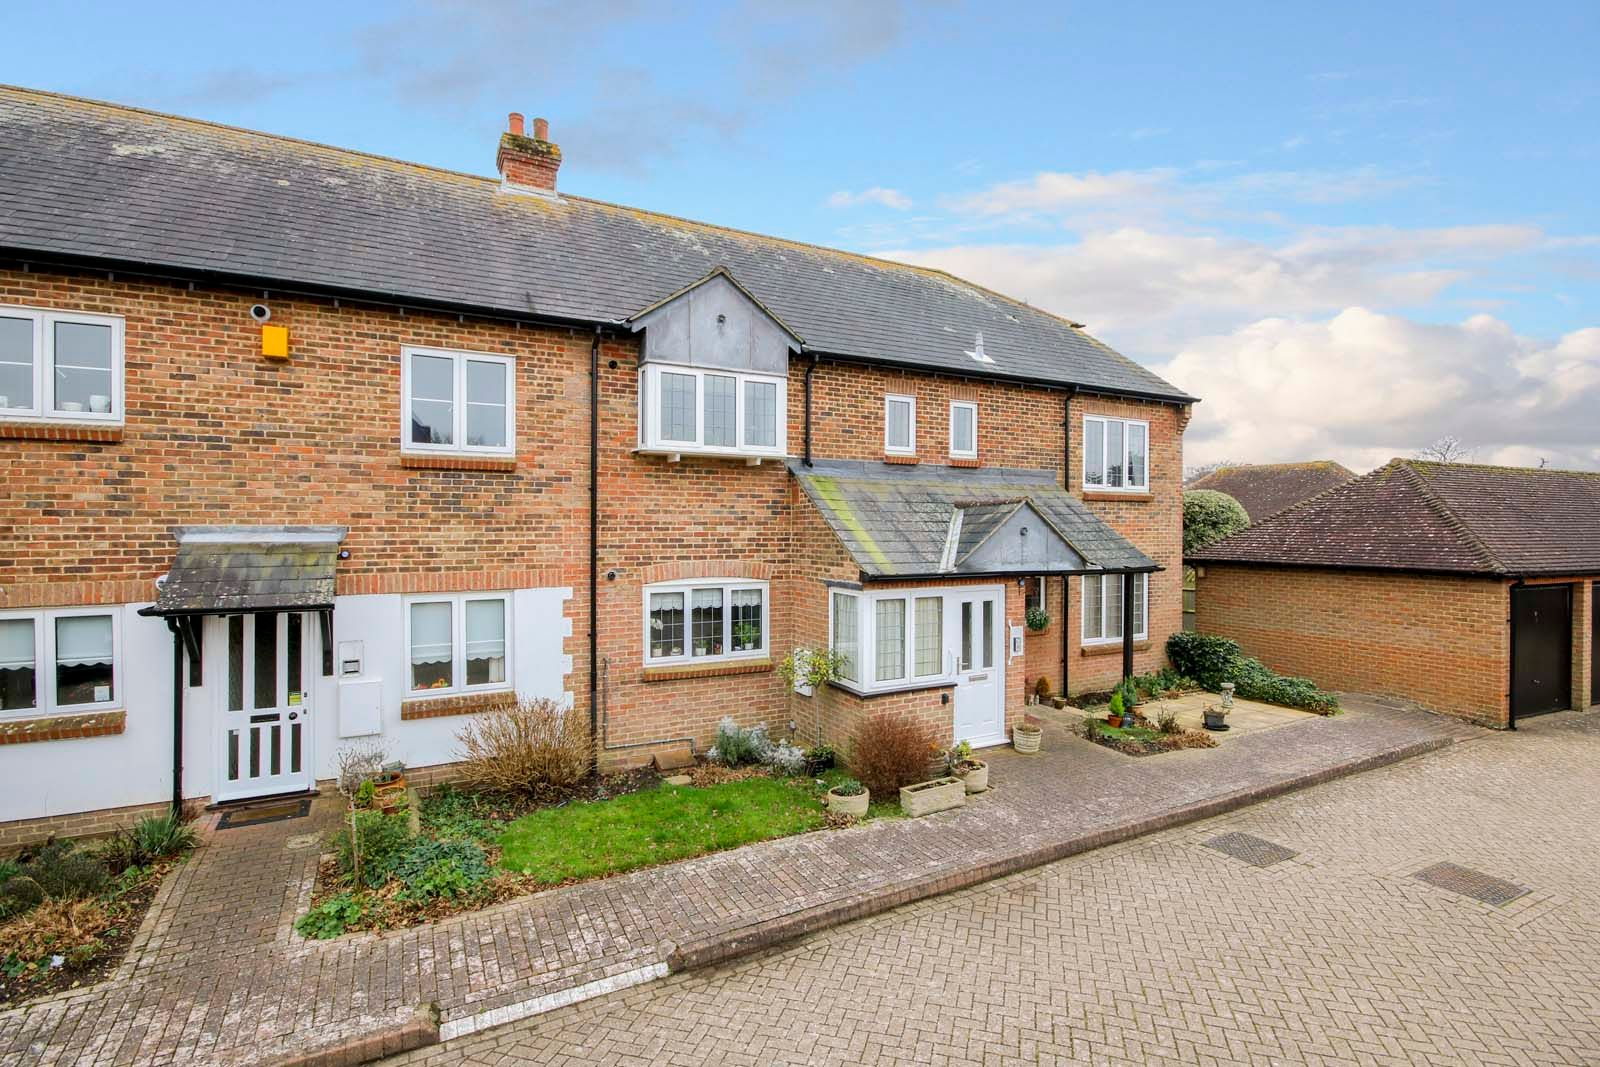 2 bed  for sale in Midholme  - Property Image 1